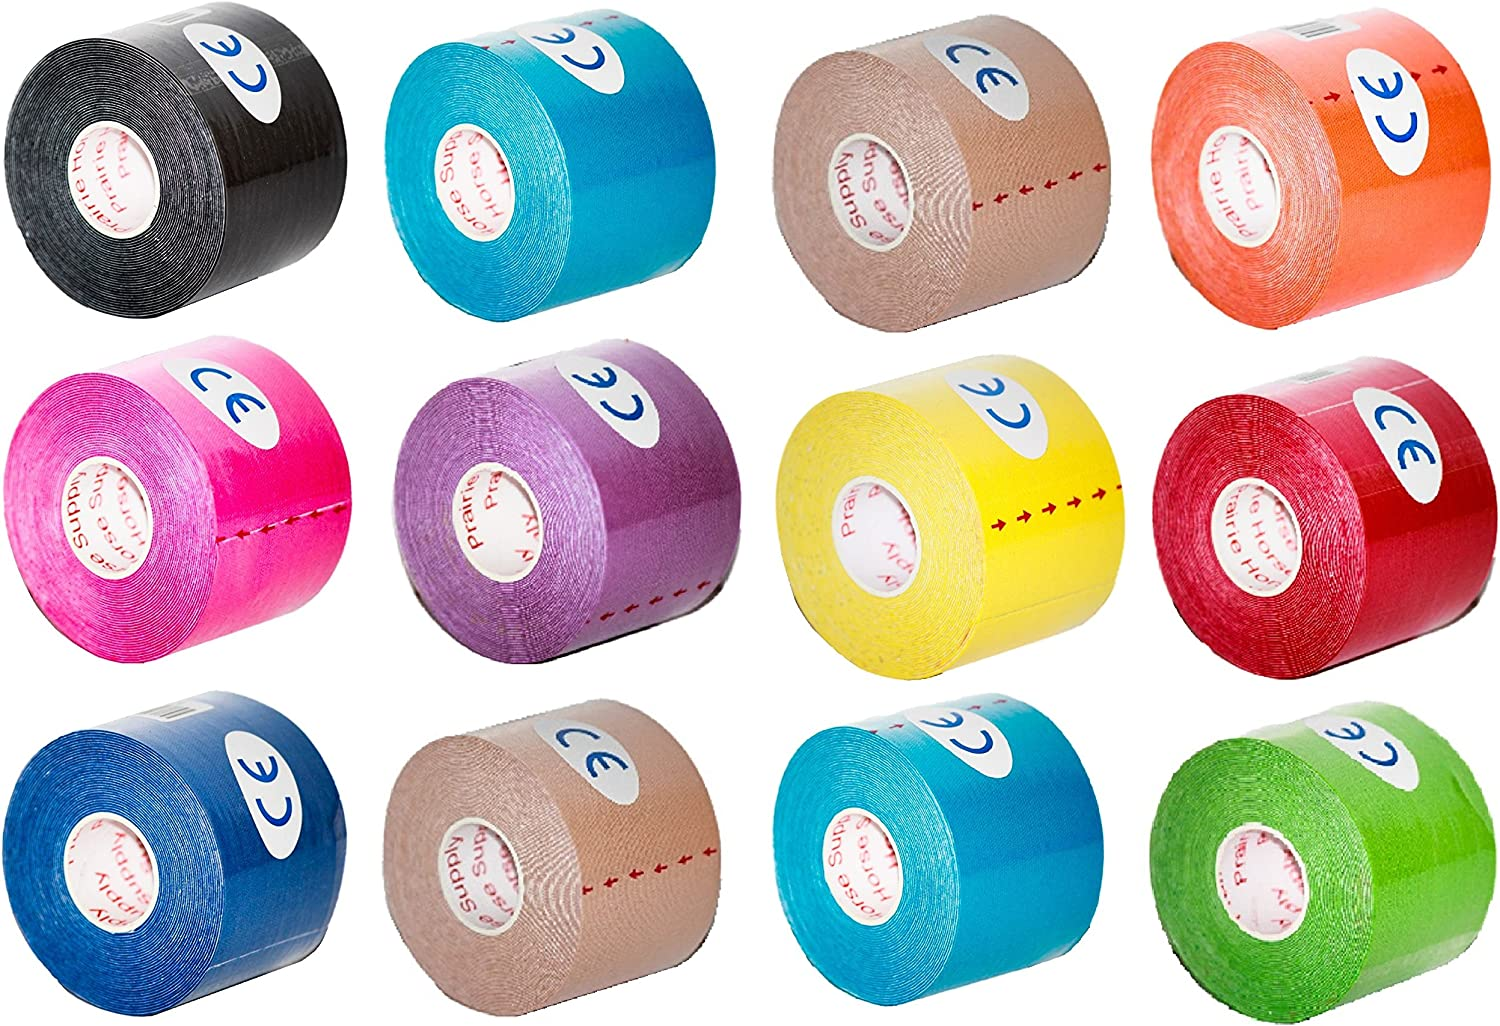 Baltimore Mall Kinesiology Tape Pro Athletic Adhesiv Support Nashville-Davidson Mall Muscle Waterproof